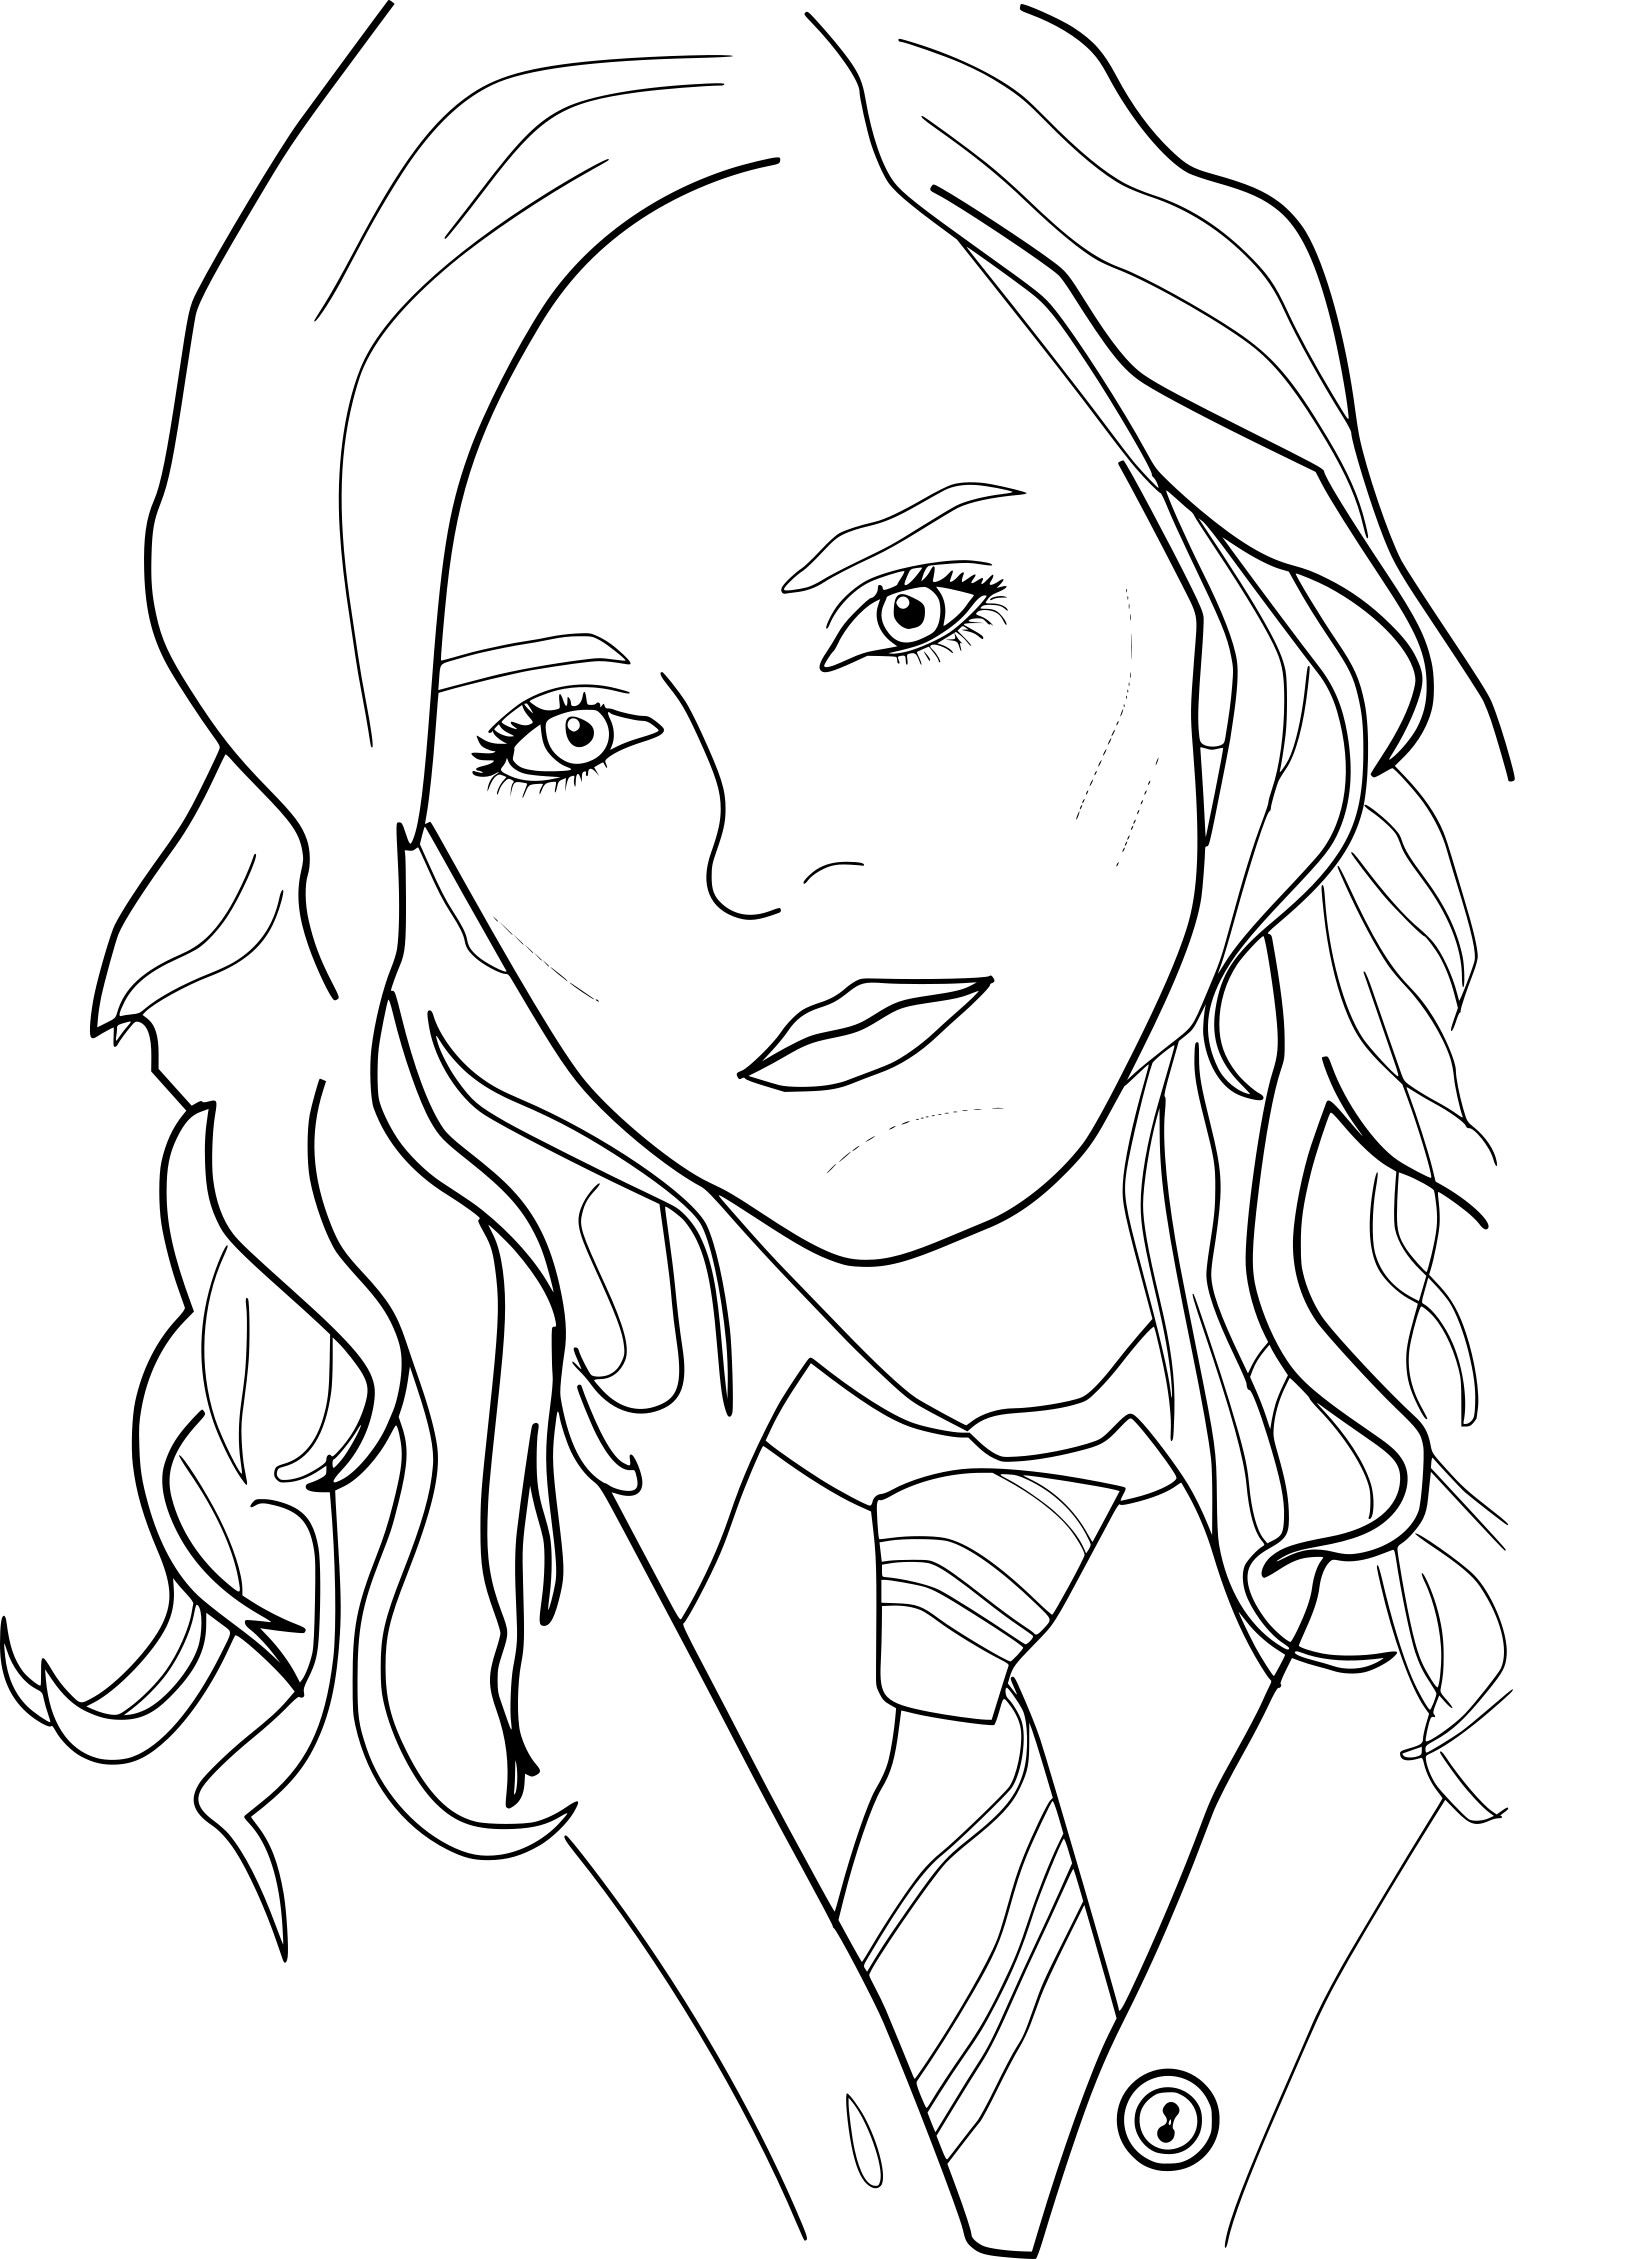 Hermione Granger Drawing At Getdrawings Com Free For Personal Use